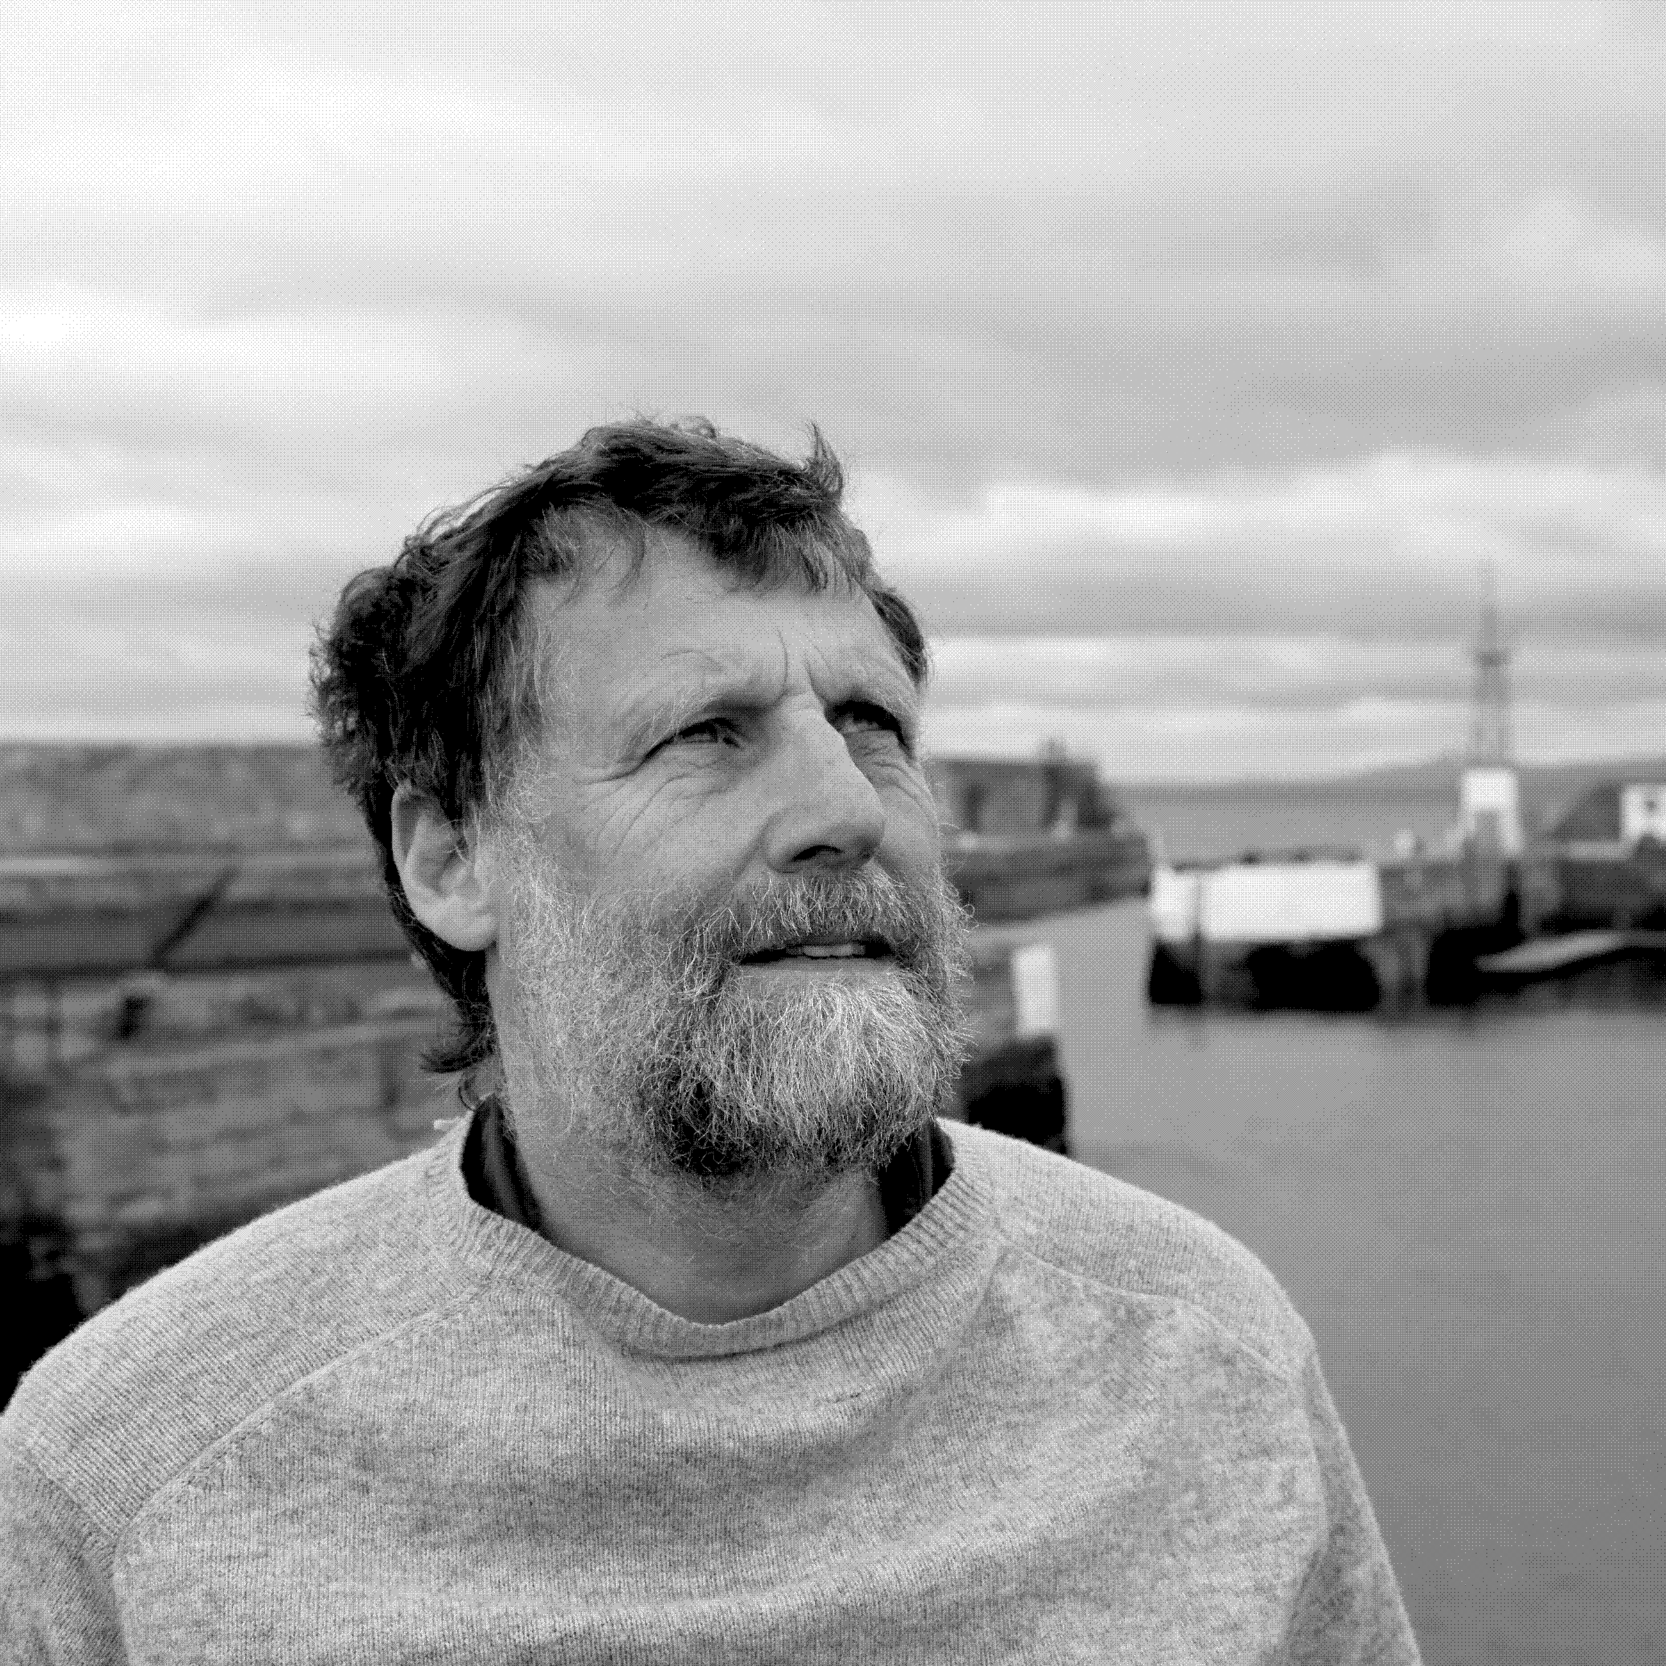 """Alastair McIntosh   Alastair has been described by BBC TV as """"one of the world's leading environmental campaigners."""" A pioneer of modern land reform in Scotland, he helped bring the Isle of Eigg into community ownership. On the Isle of Harris he negotiated withdrawal of the world's biggest cement company (Lafarge) from a devastating """"super quarry"""" plan, then agreed to serve (unpaid) on that company's Sustainability Stakeholders Panel for 10 years.  Alastair guest lectures at military staff colleges, most notably the UK Defence Academy, on nonviolence. He is a fellow of the School of Divinity at the University of Edinburgh and a visiting professor at the College of Social Sciences, University  Website  www.alastairmcIntosh.com  Twitter  @alastairmci"""